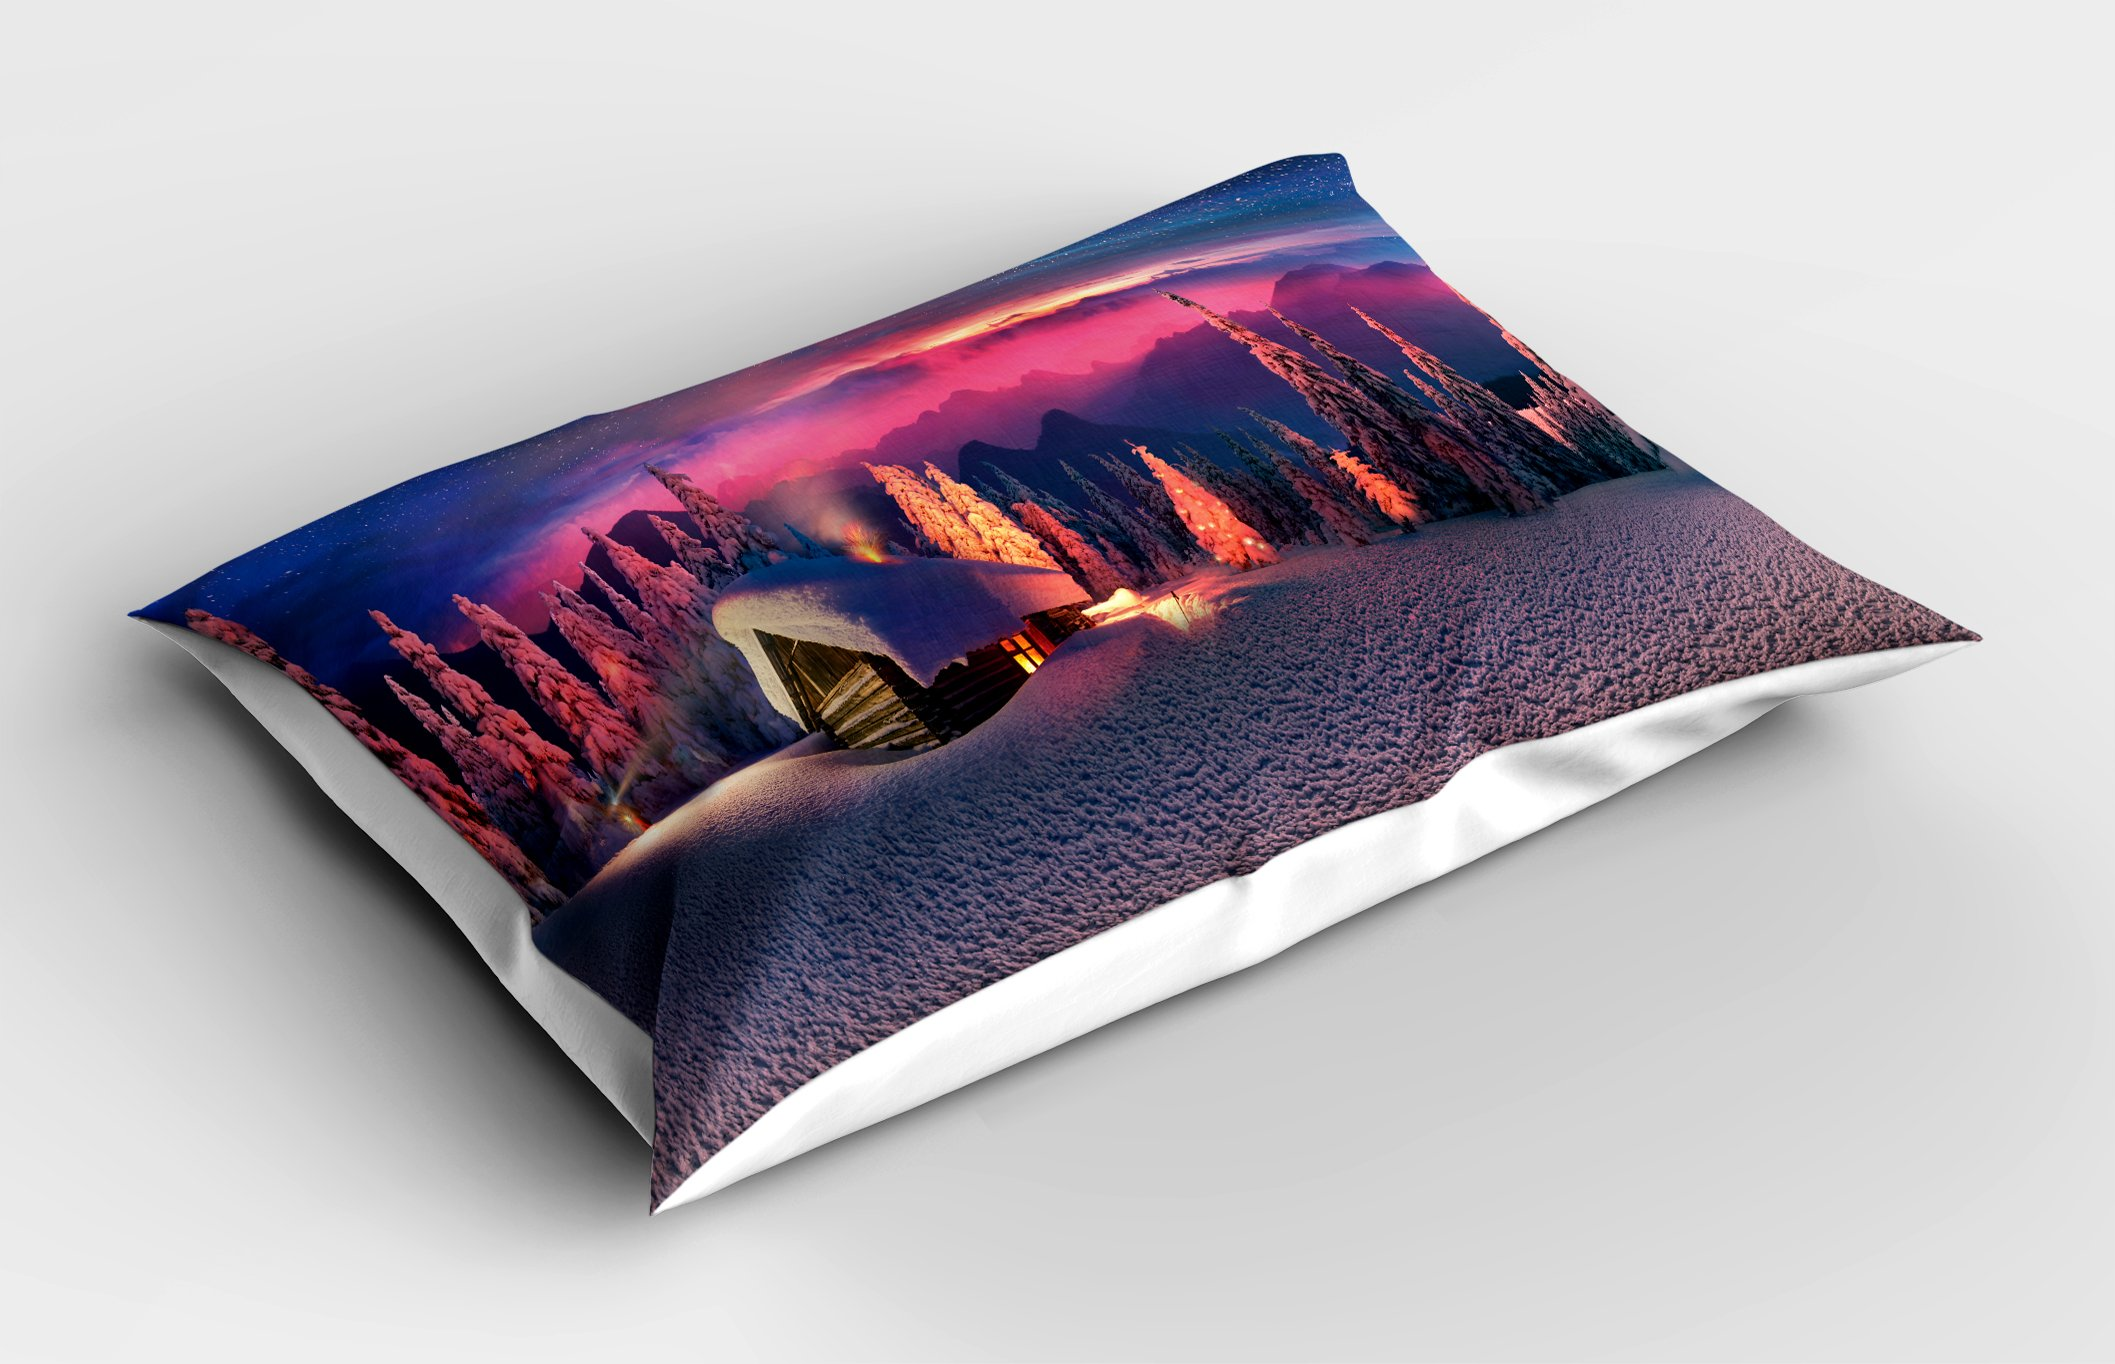 Ambesonne Milky Way Pillow Sham, Wild Alpine Scene with Cabin in The Woods Winter with Starry Skyline Illustration, Decorative Standard Queen Size Printed Pillowcase, 30 X 20 inches, Multicolor by Ambesonne (Image #2)